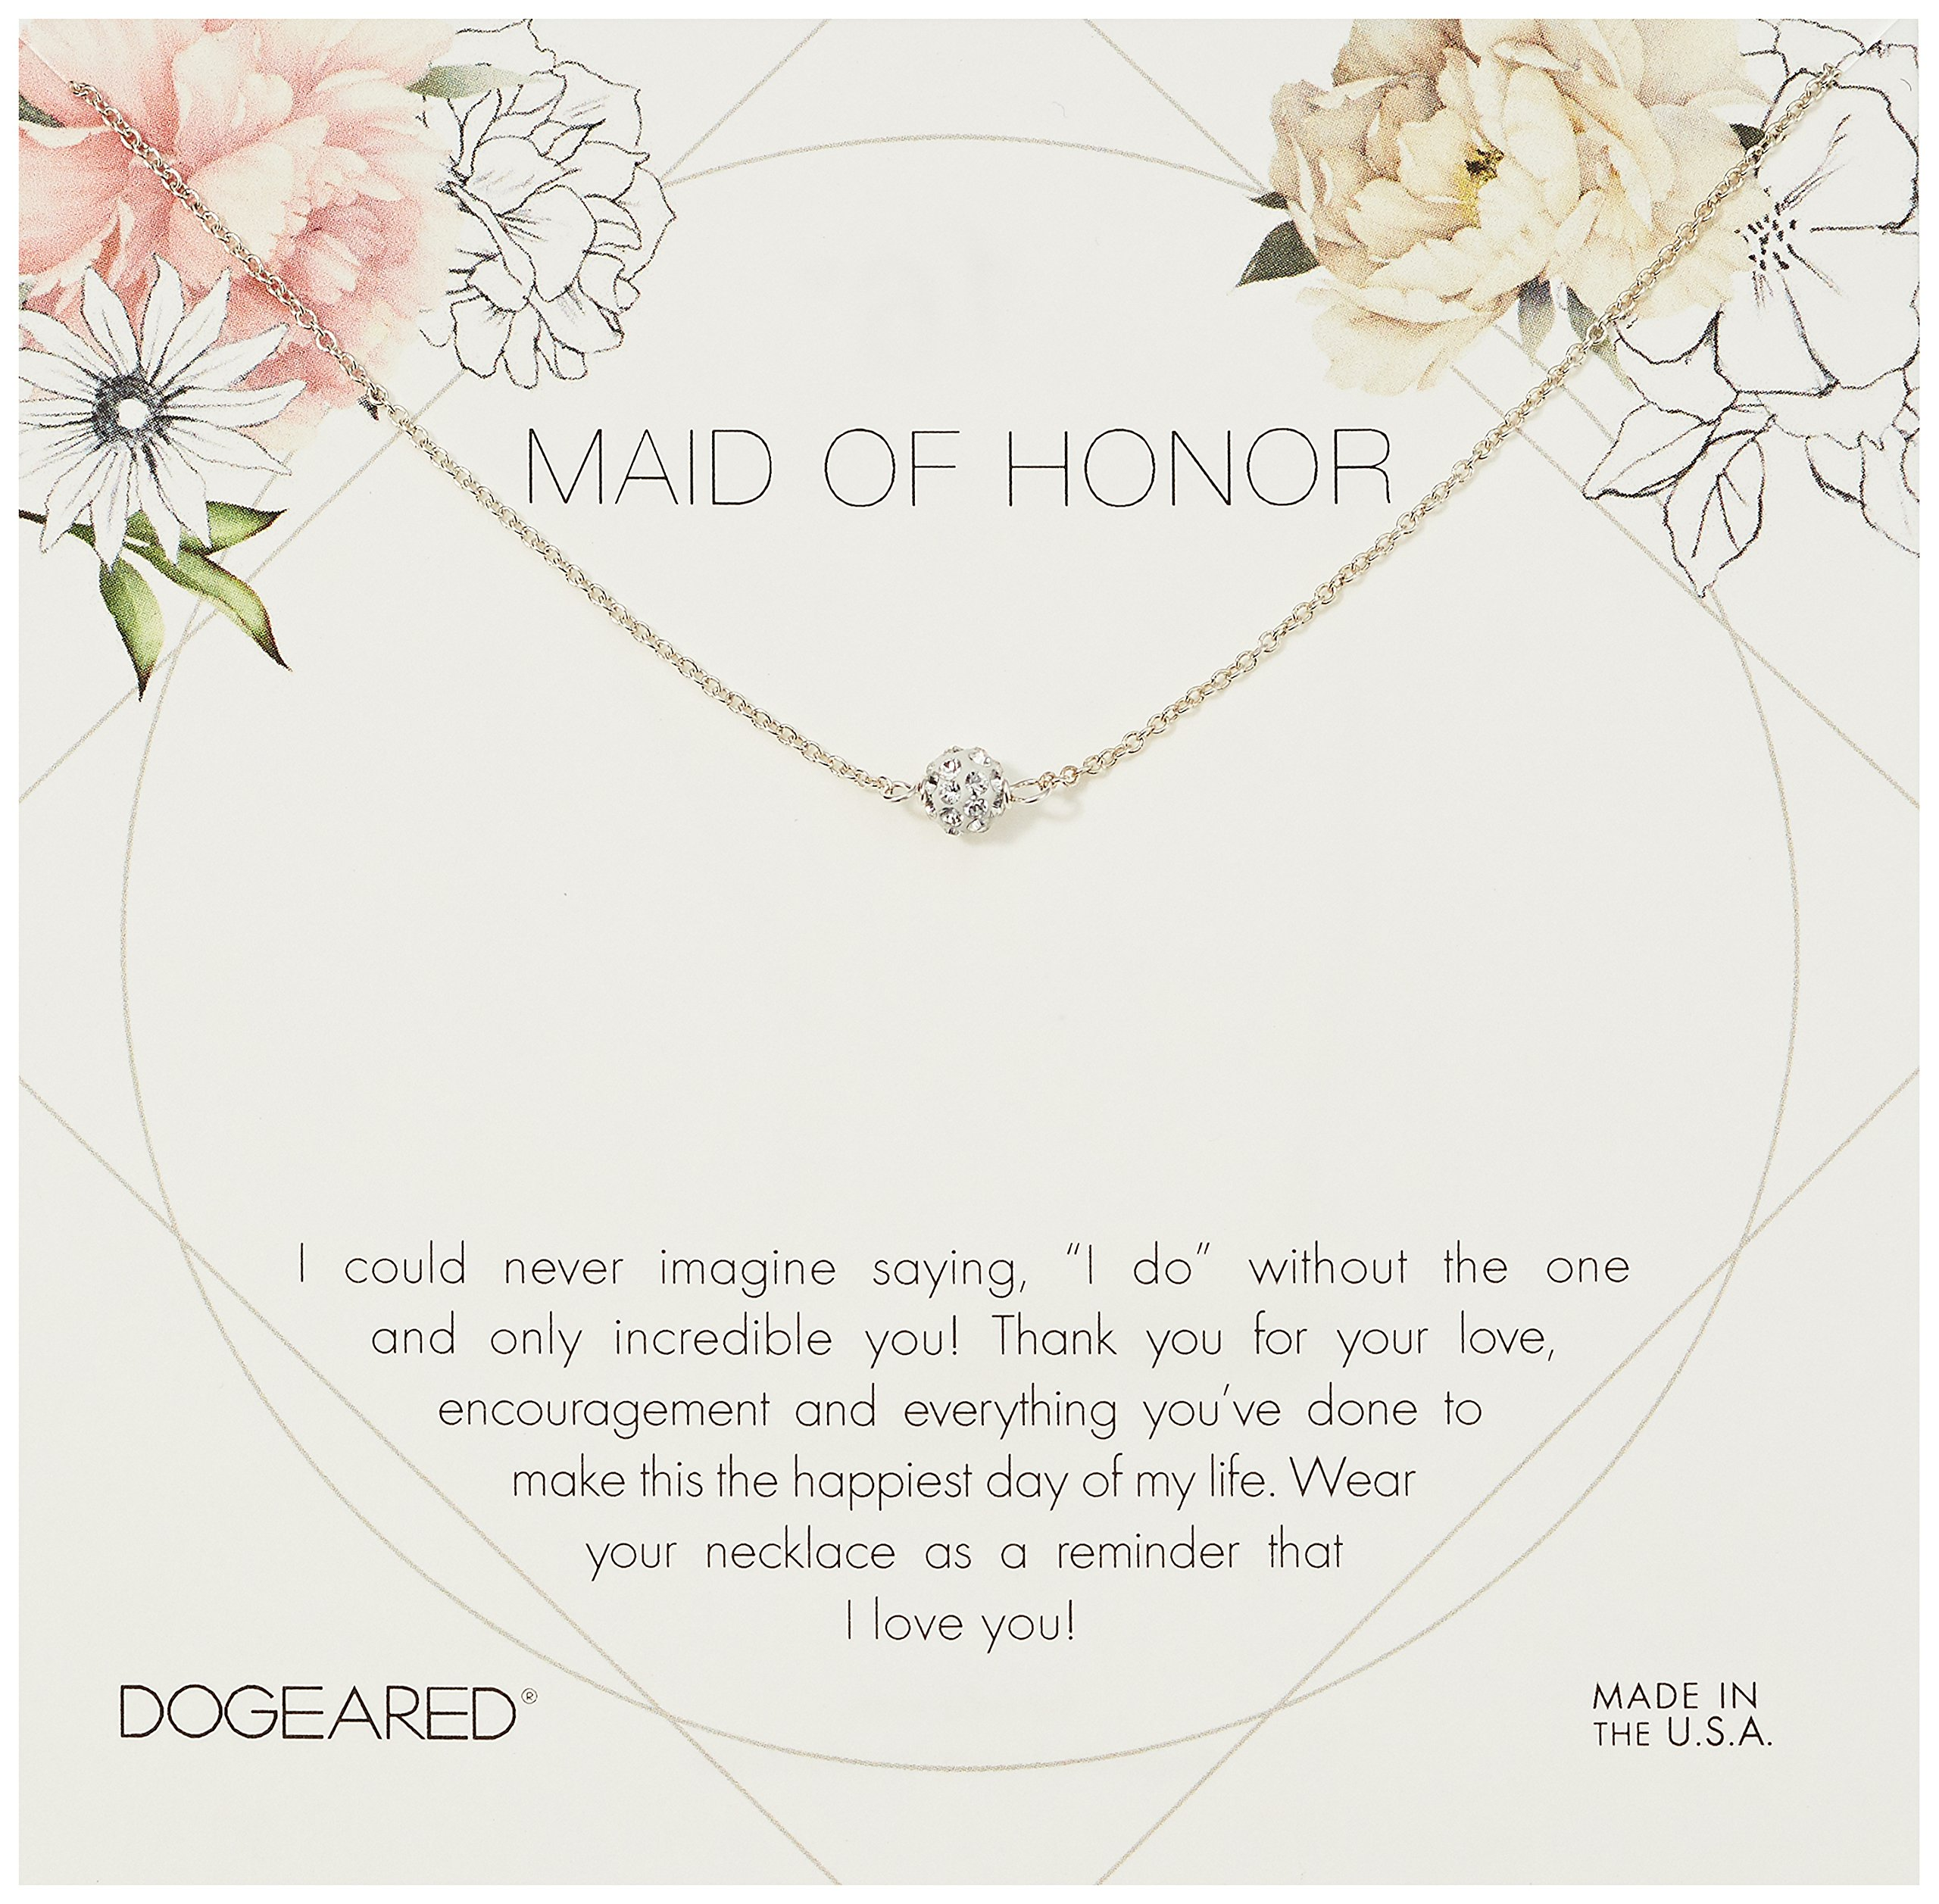 Dogeared Maid Of Honor Flower Card Pave Sparkle Chain Necklace, Sterling Silver, 16'' + 2'' Extension